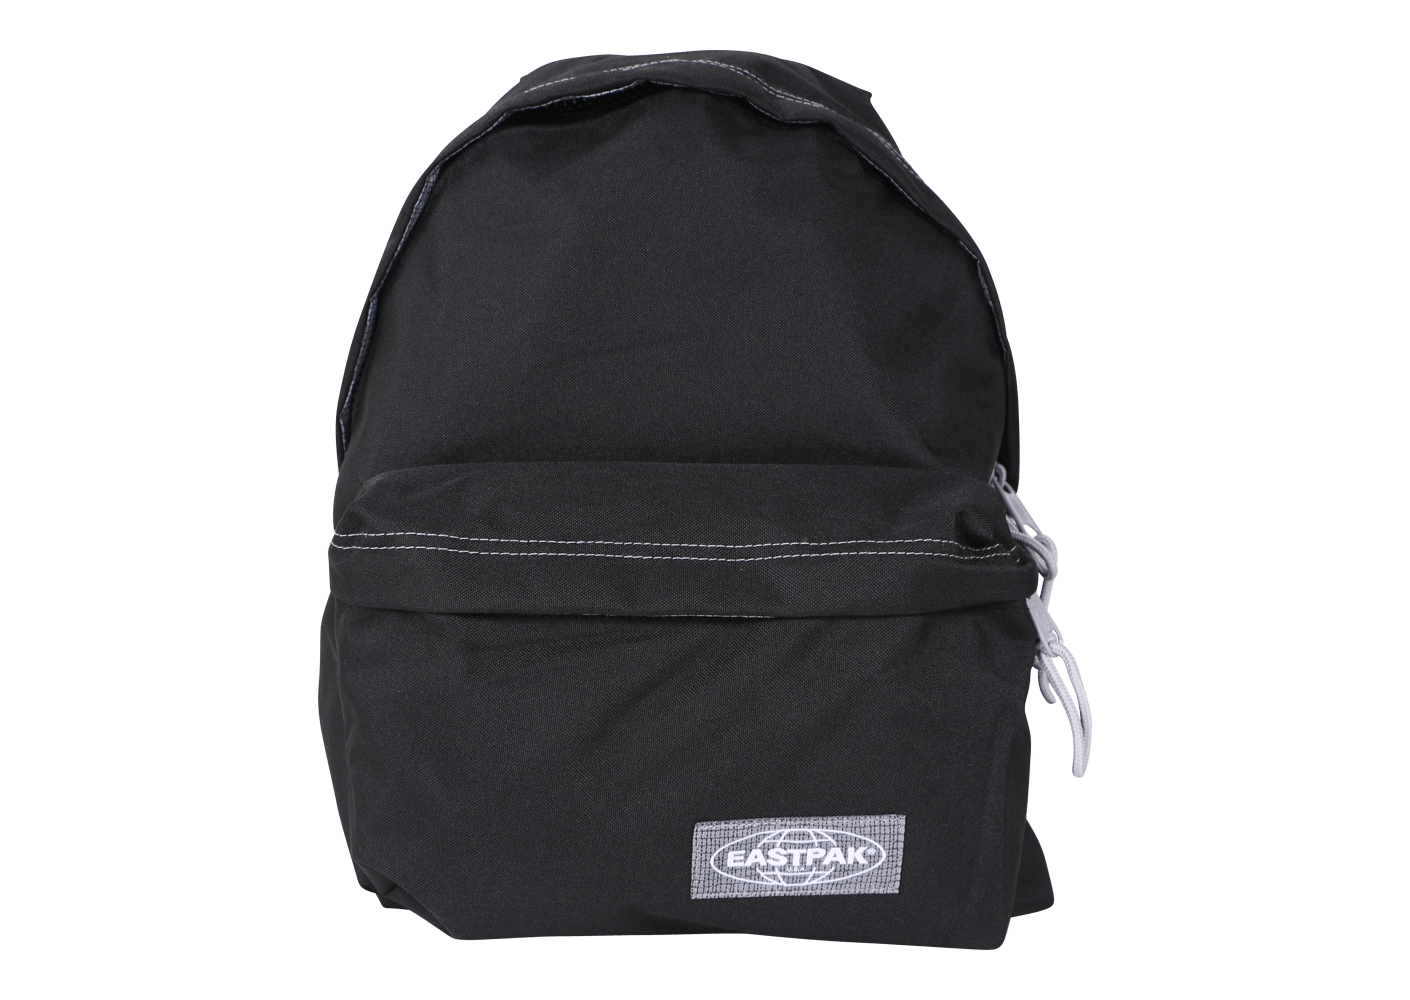 eastpak sac dos padded pak 39 r noir et gris pour lyc ens chausport. Black Bedroom Furniture Sets. Home Design Ideas